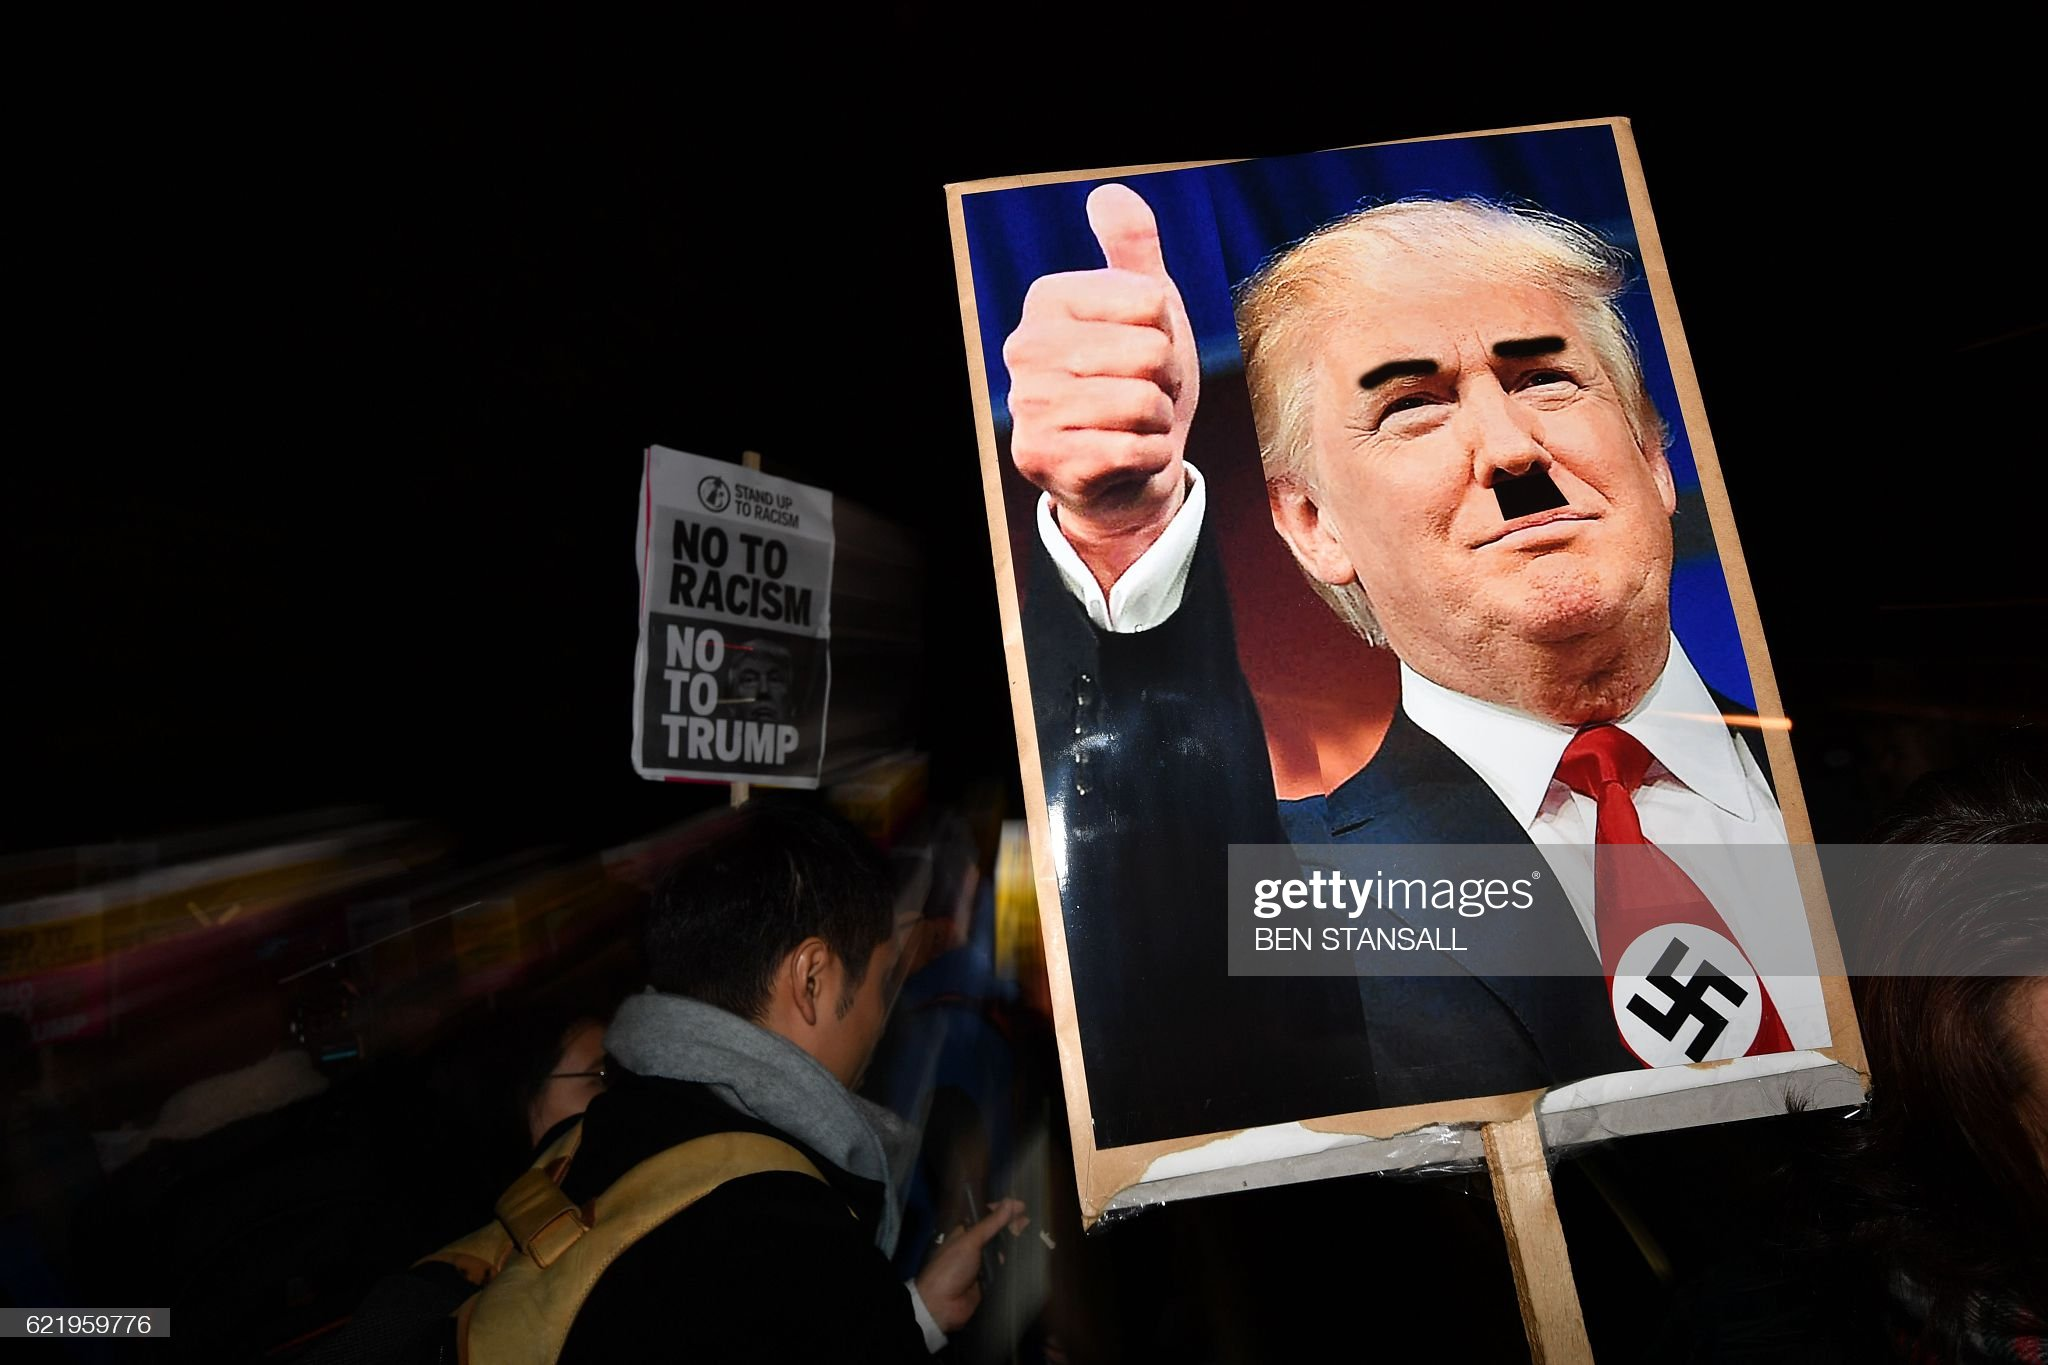 TOPSHOT-BRITAIN-US-VOTE-TRUMP-DEMO : News Photo